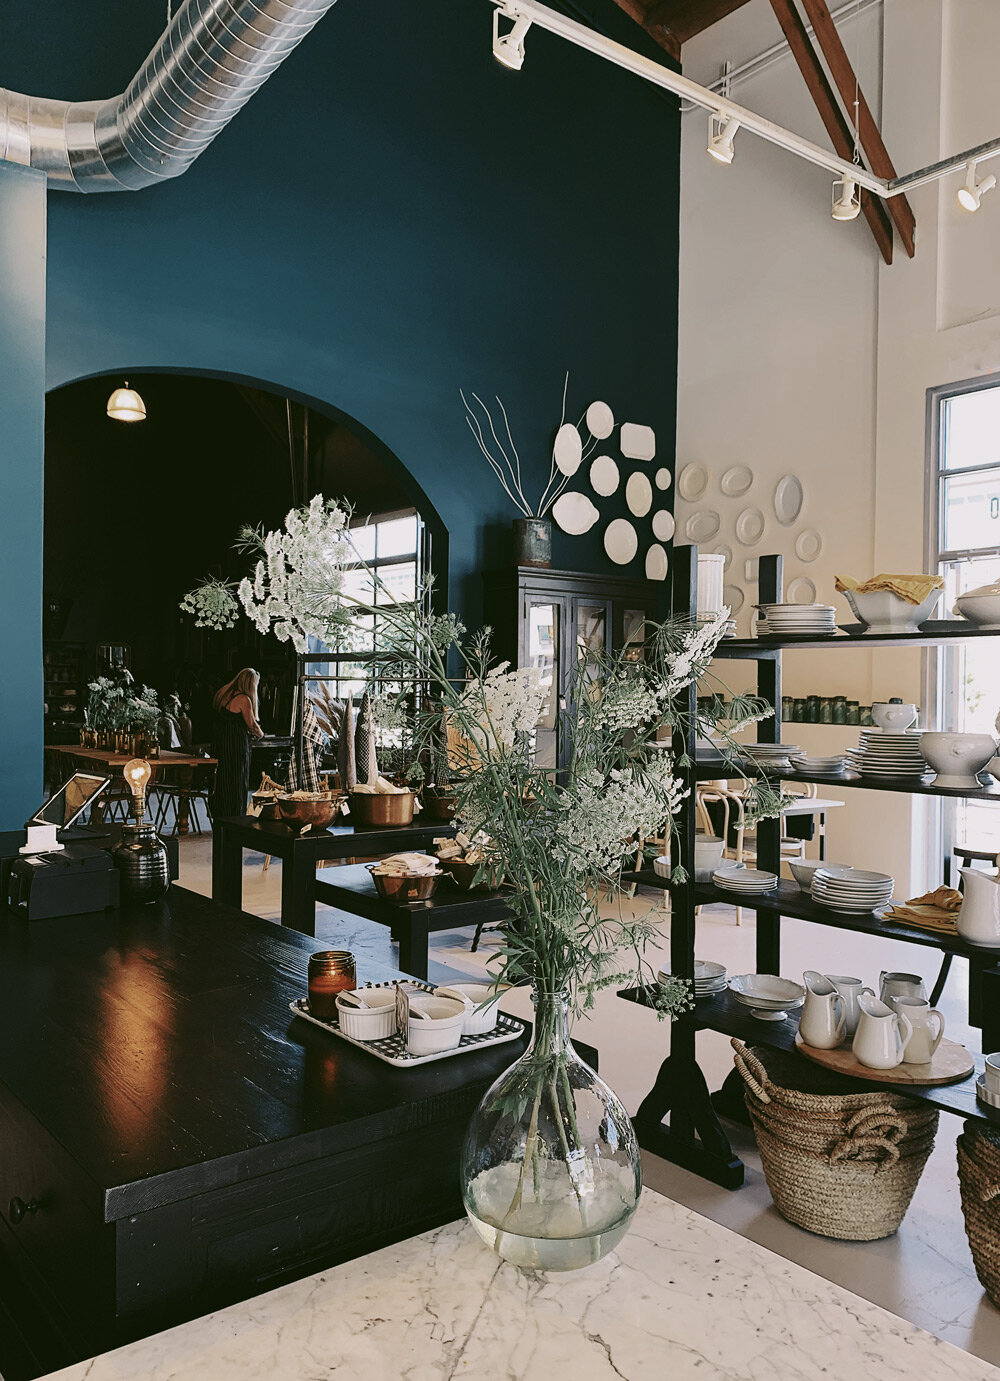 Decor Shop Love: Tour Elsie Green